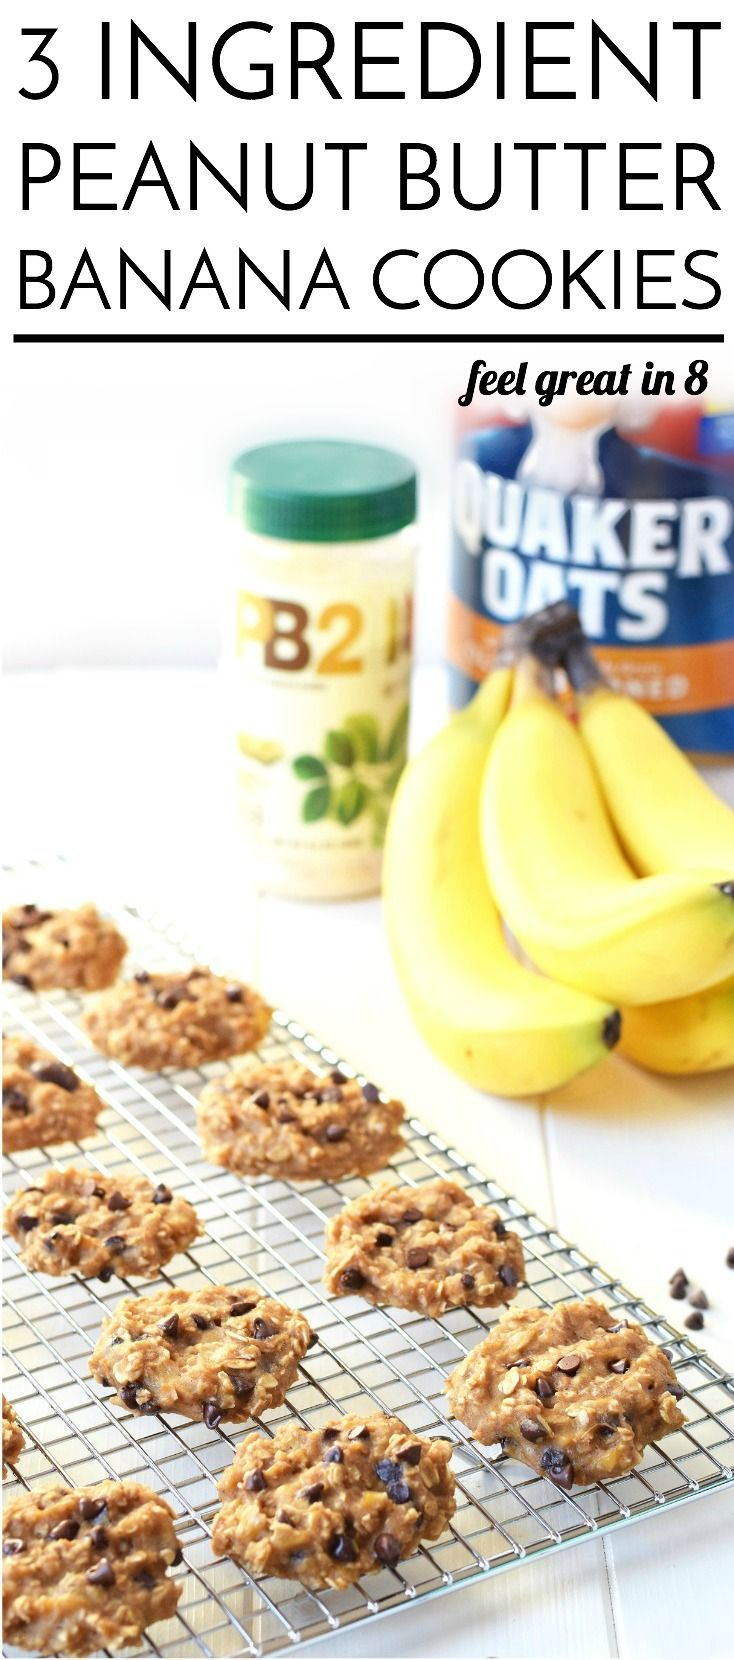 3 Ingredient Peanut Butter Banana Cookies - Made with only bananas, oats, PB2 (and your choice of mix-ins), these cookies are less than 50 calories each and healthy enough to be breakfast!